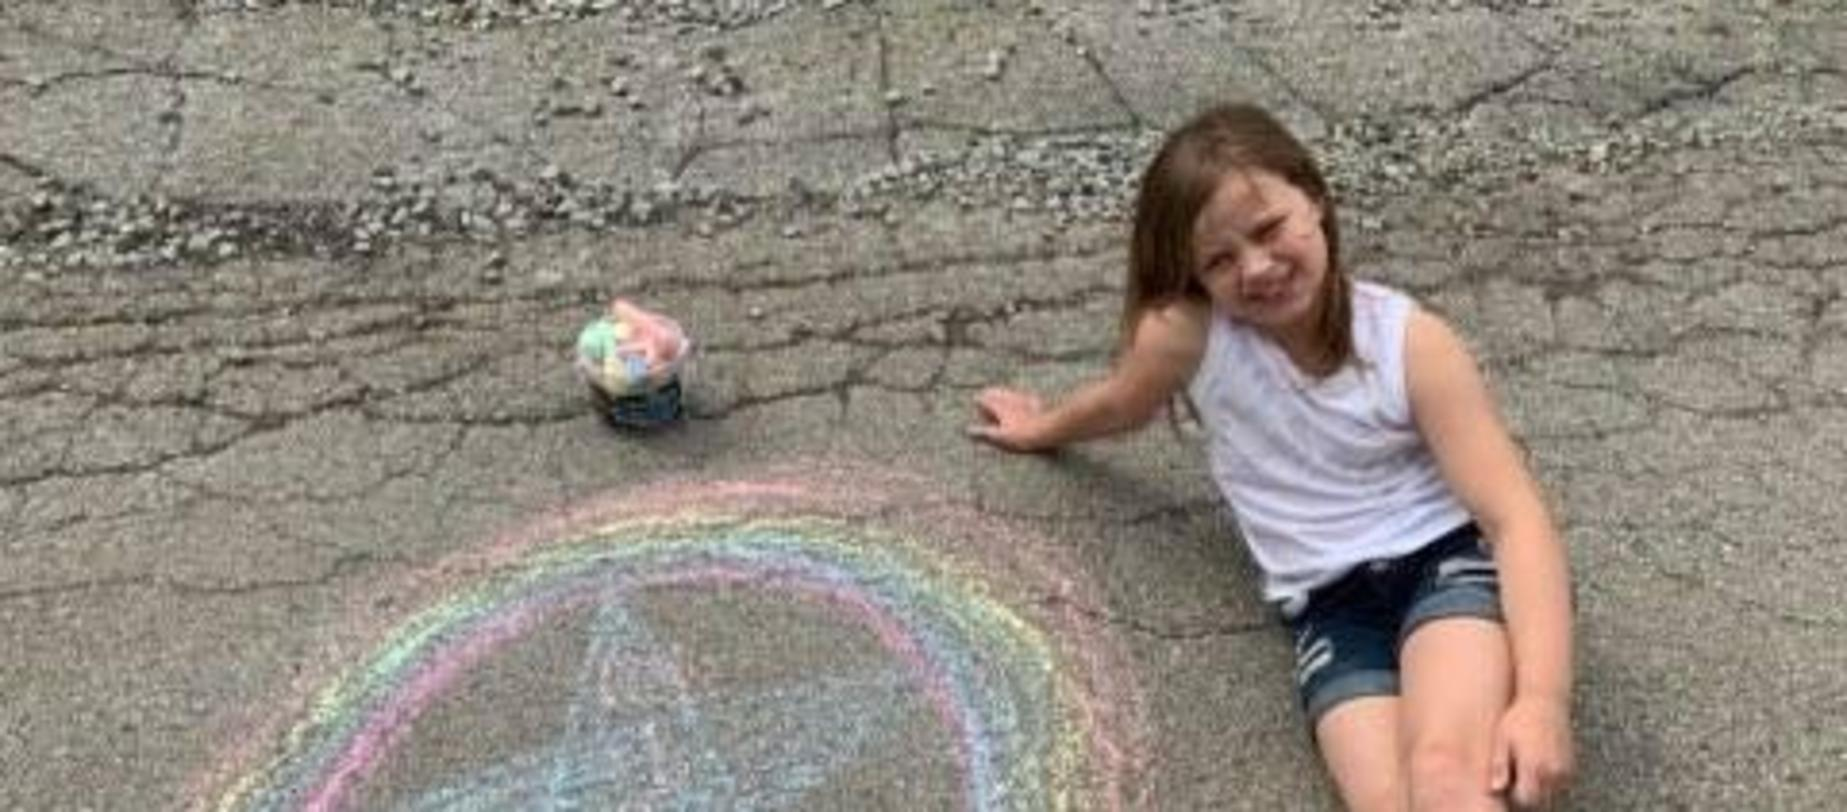 girl sitting on driveway playing with sidewalk chalk